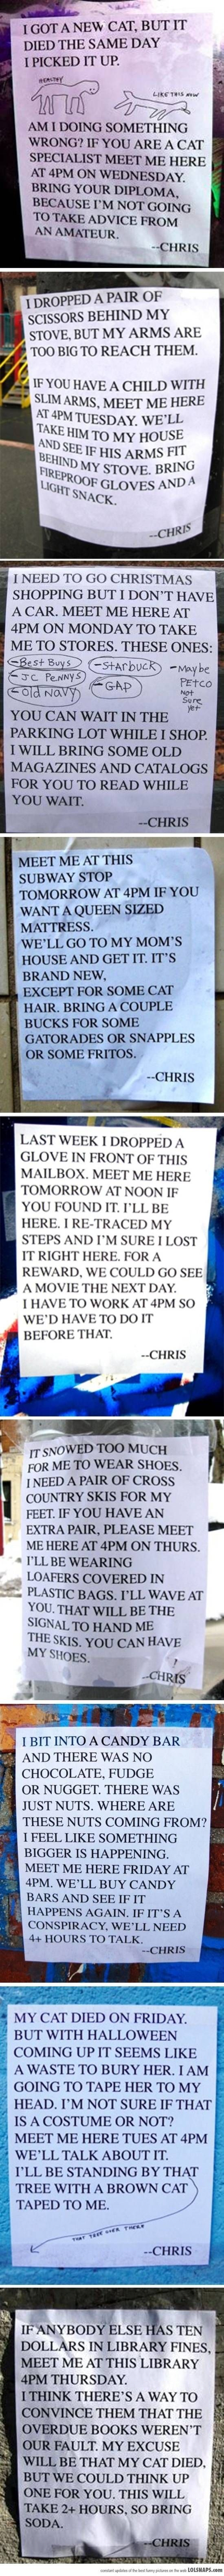 Some Guy Named Chris Has Something To Say